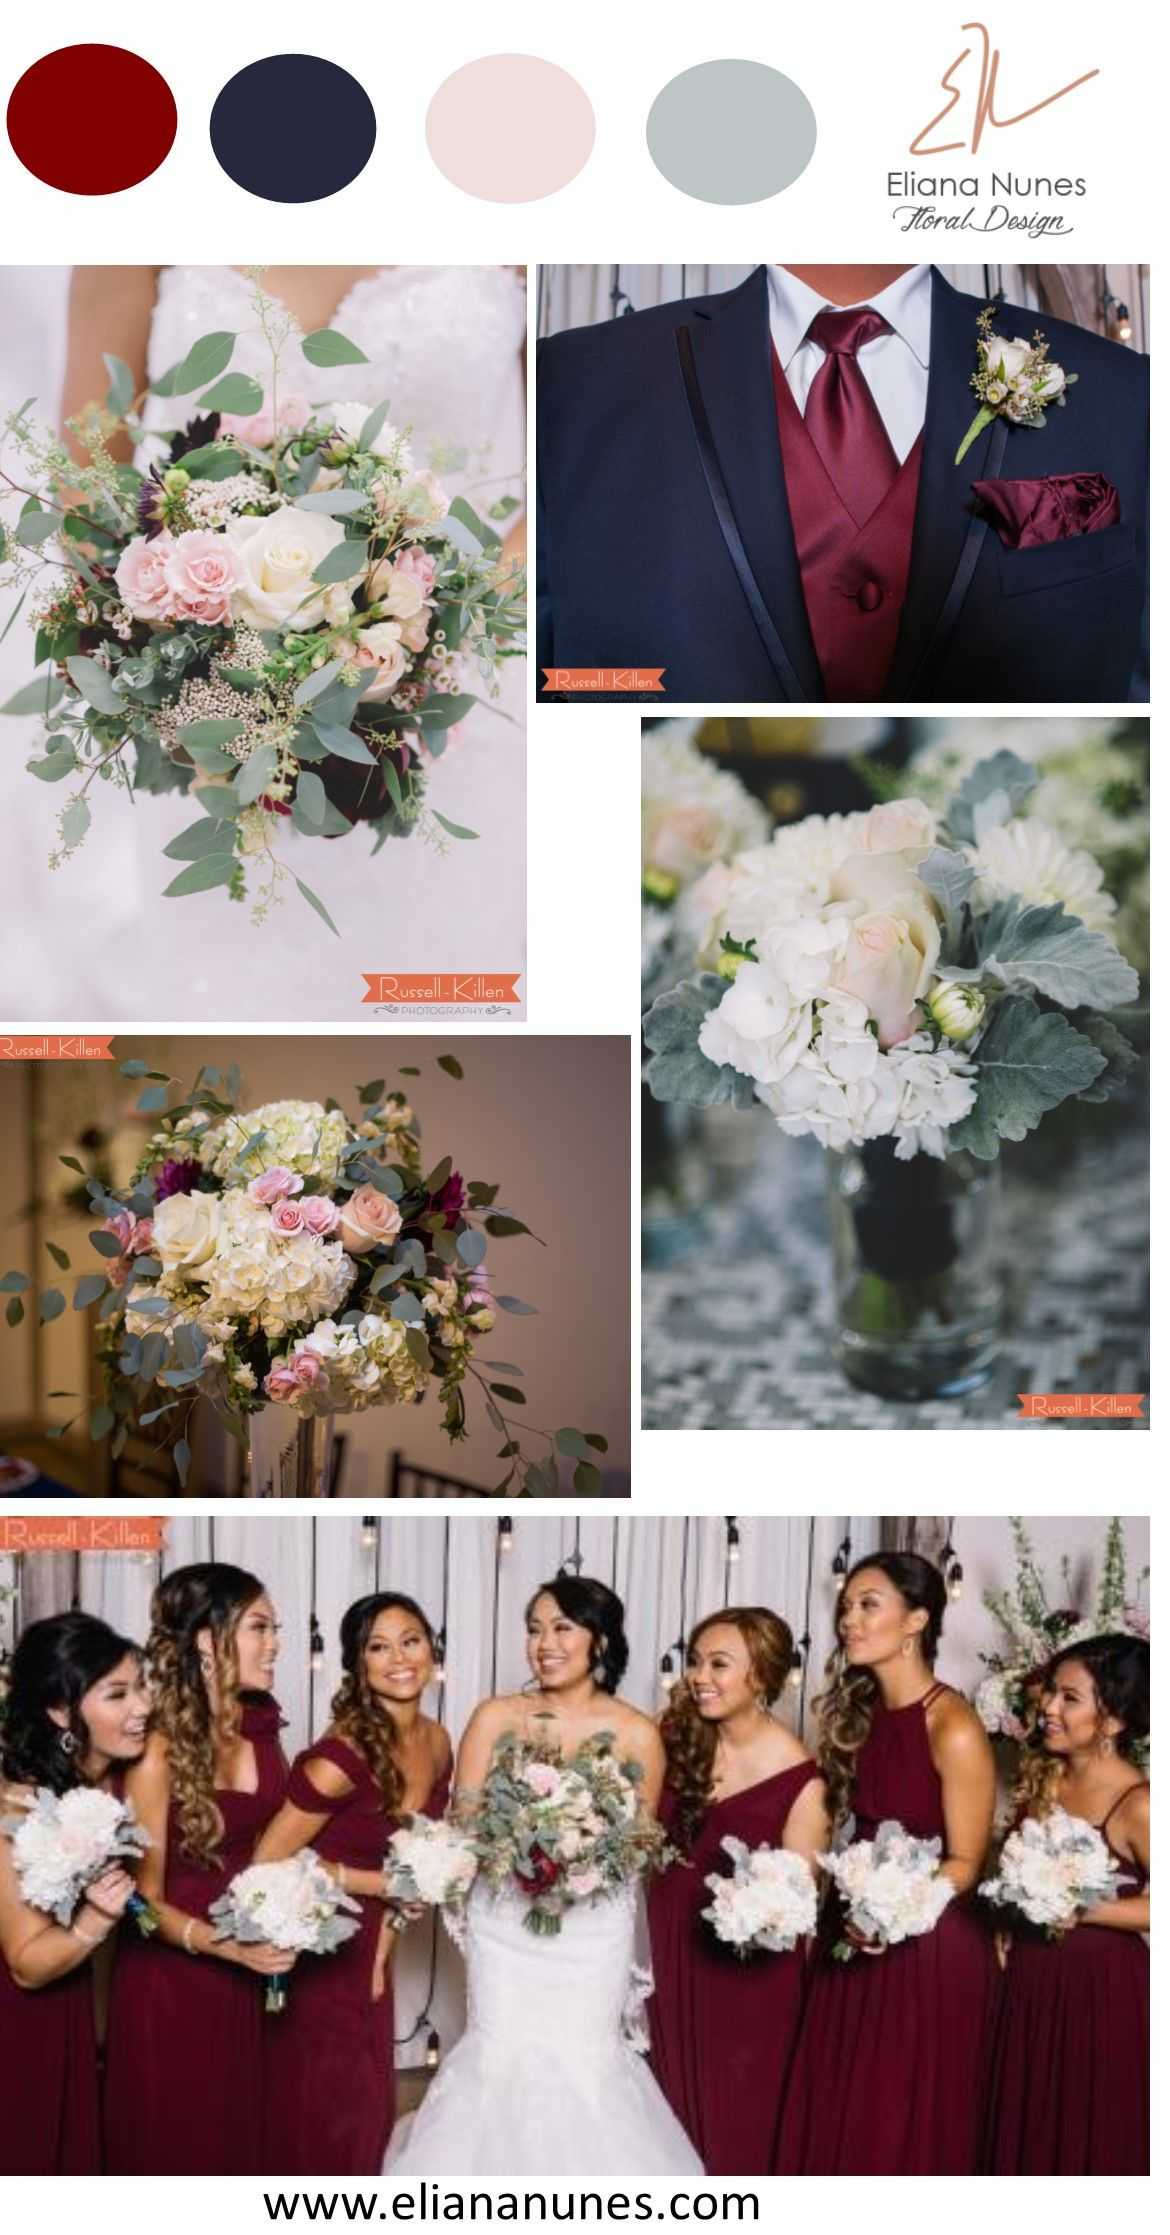 Burgundy Navy Blush And Gray Wedding Colors Inspiration By Eliana Nunes Fl Design Florist In North Carolina Flowers